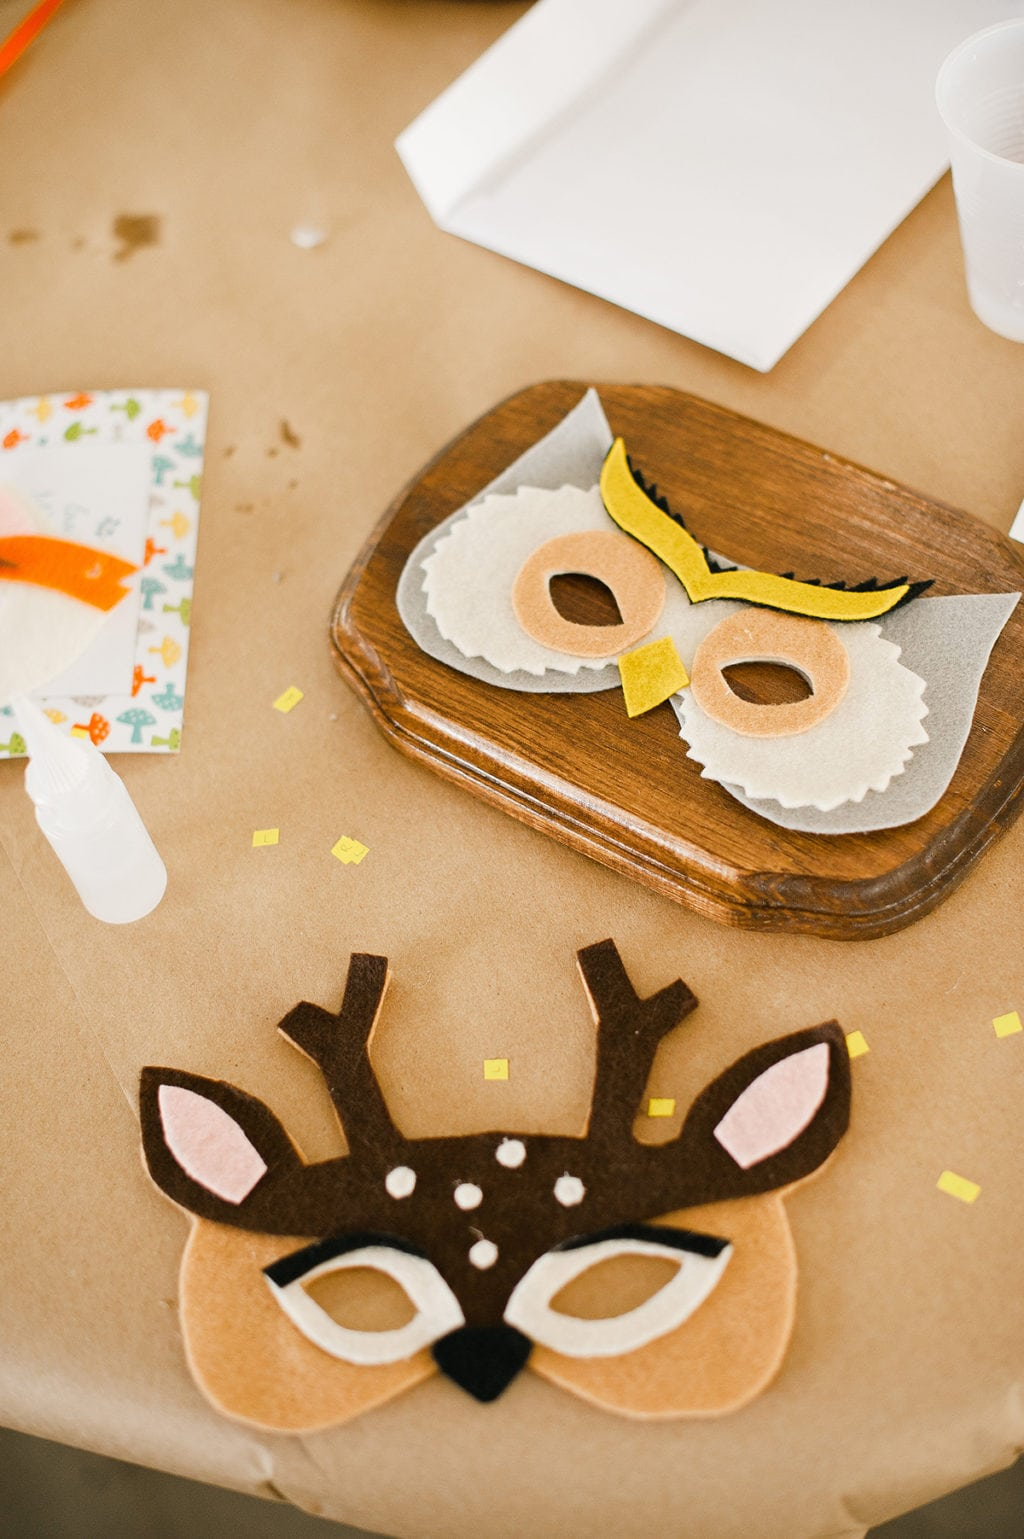 MiniMakers Family Workshop Event hosted by Damask Love and Lovely Indeed